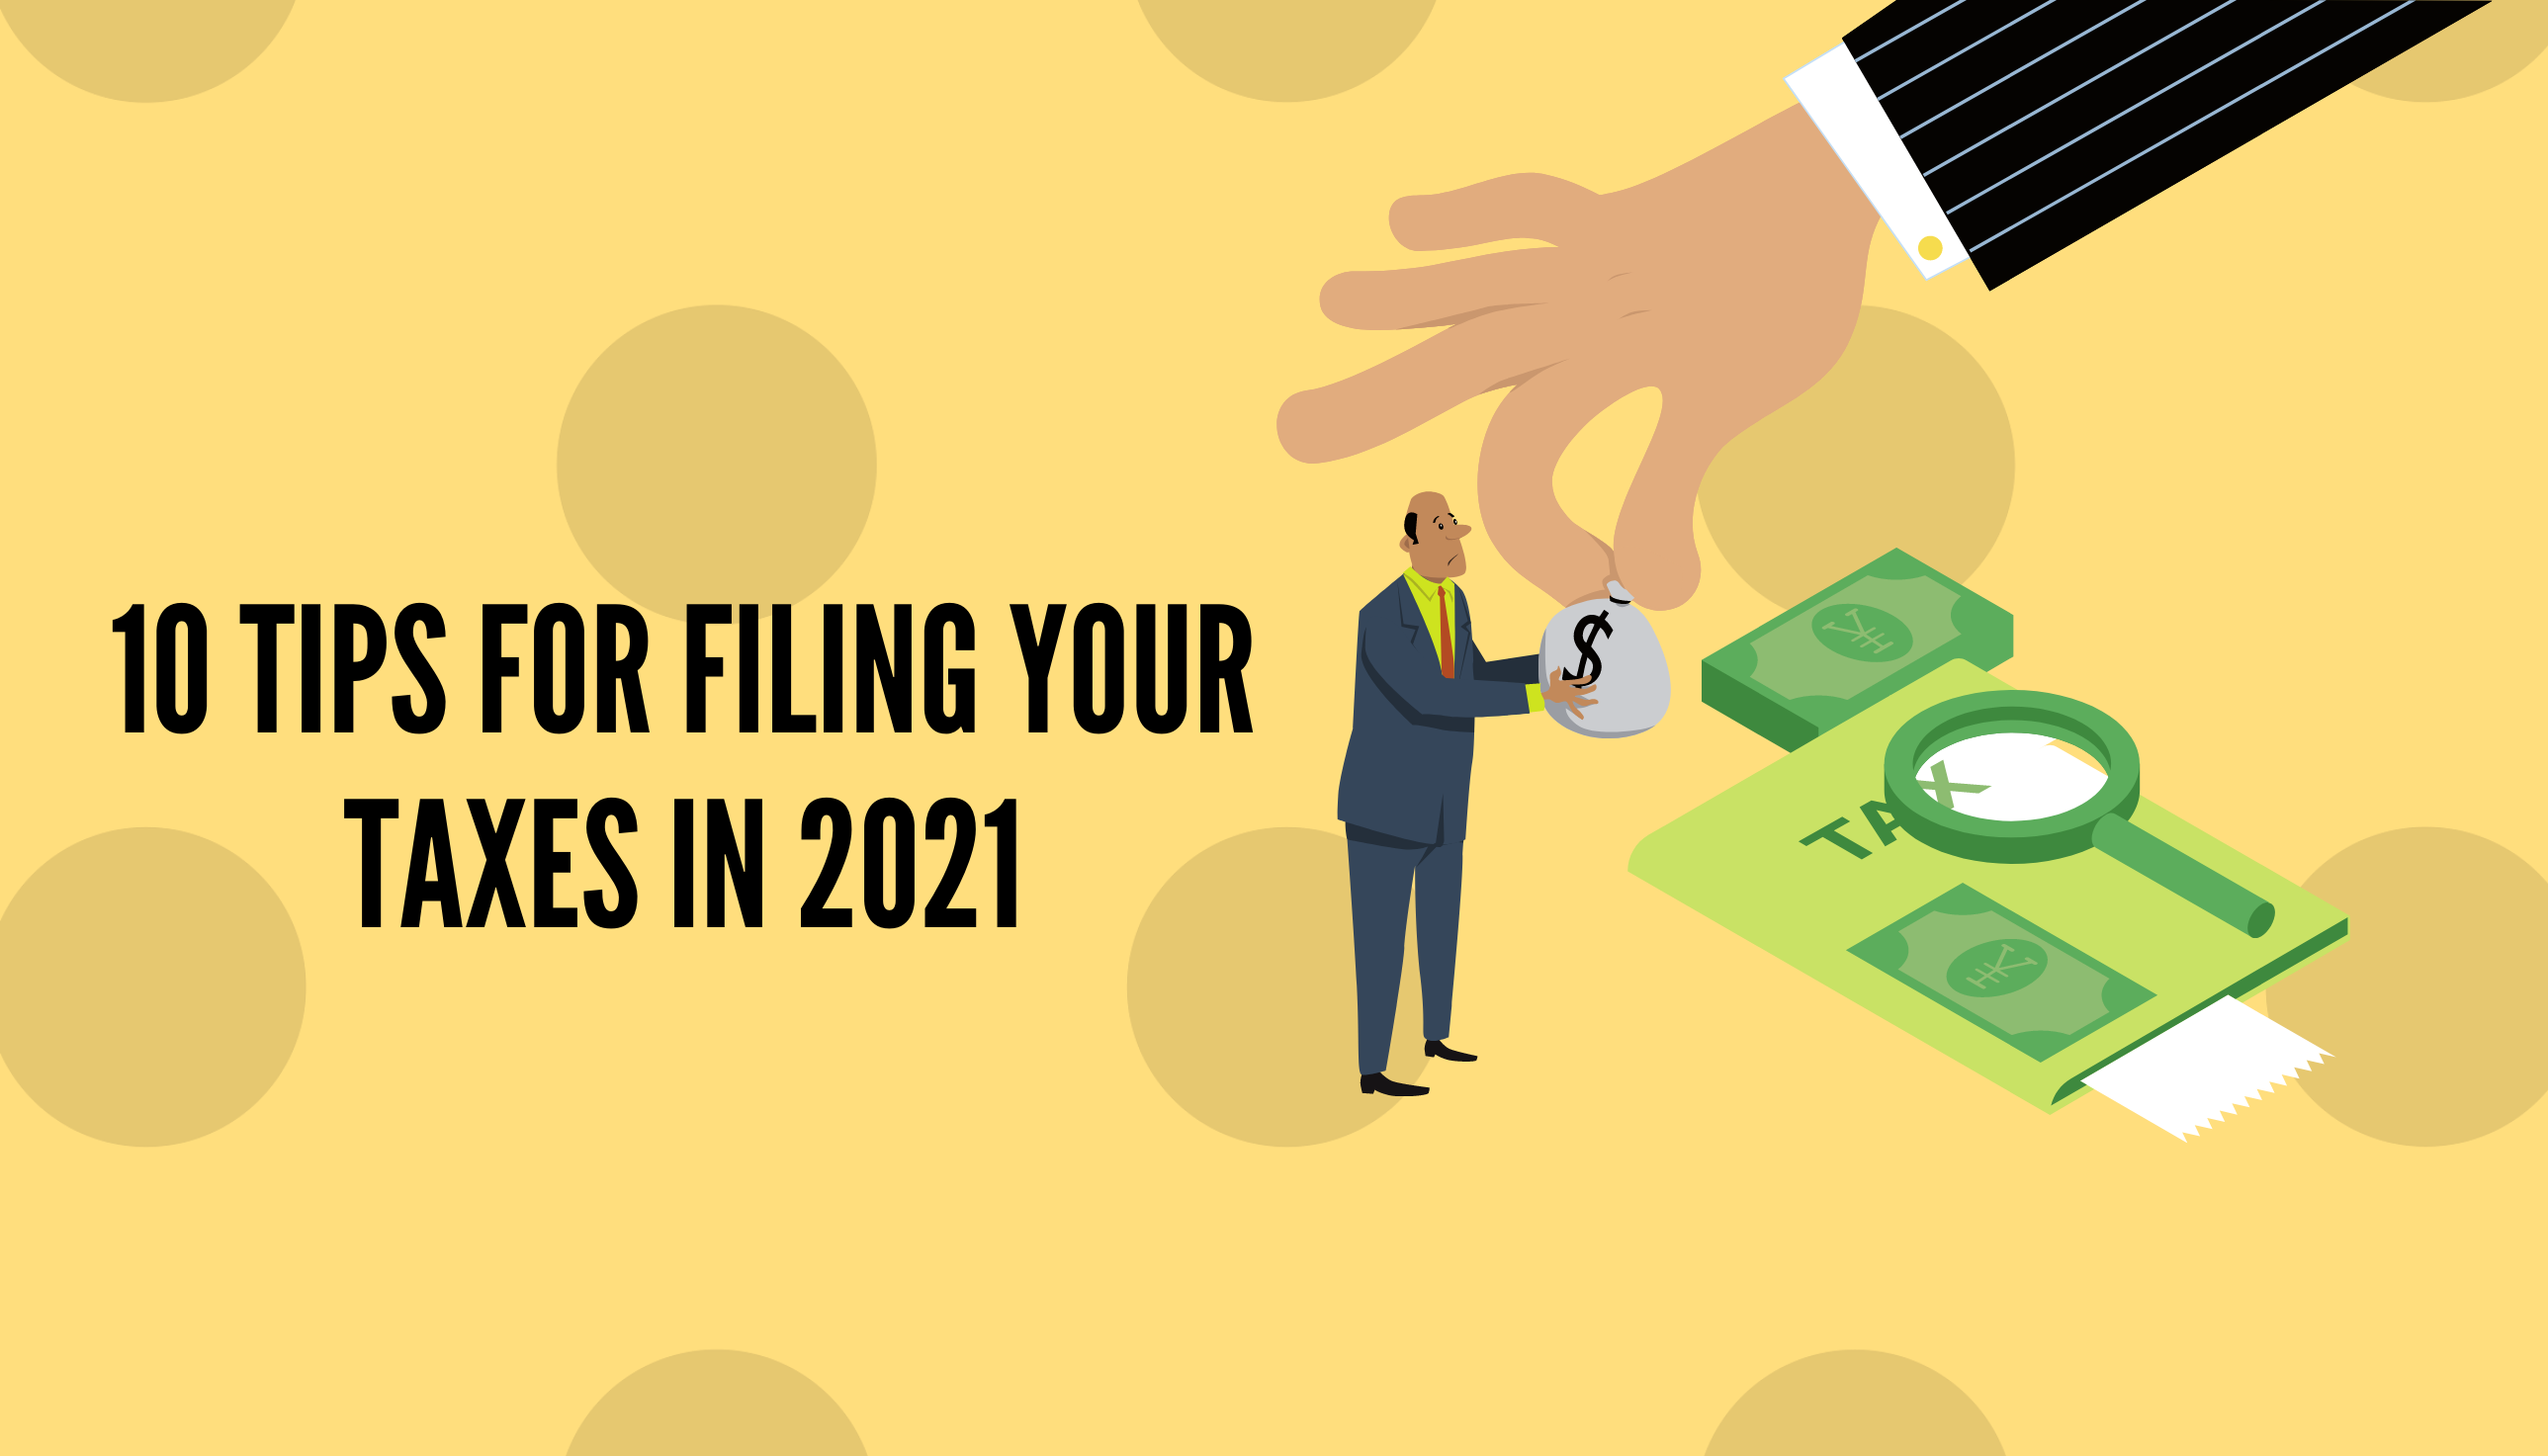 10 Tips for Filing Your Taxes in 2021